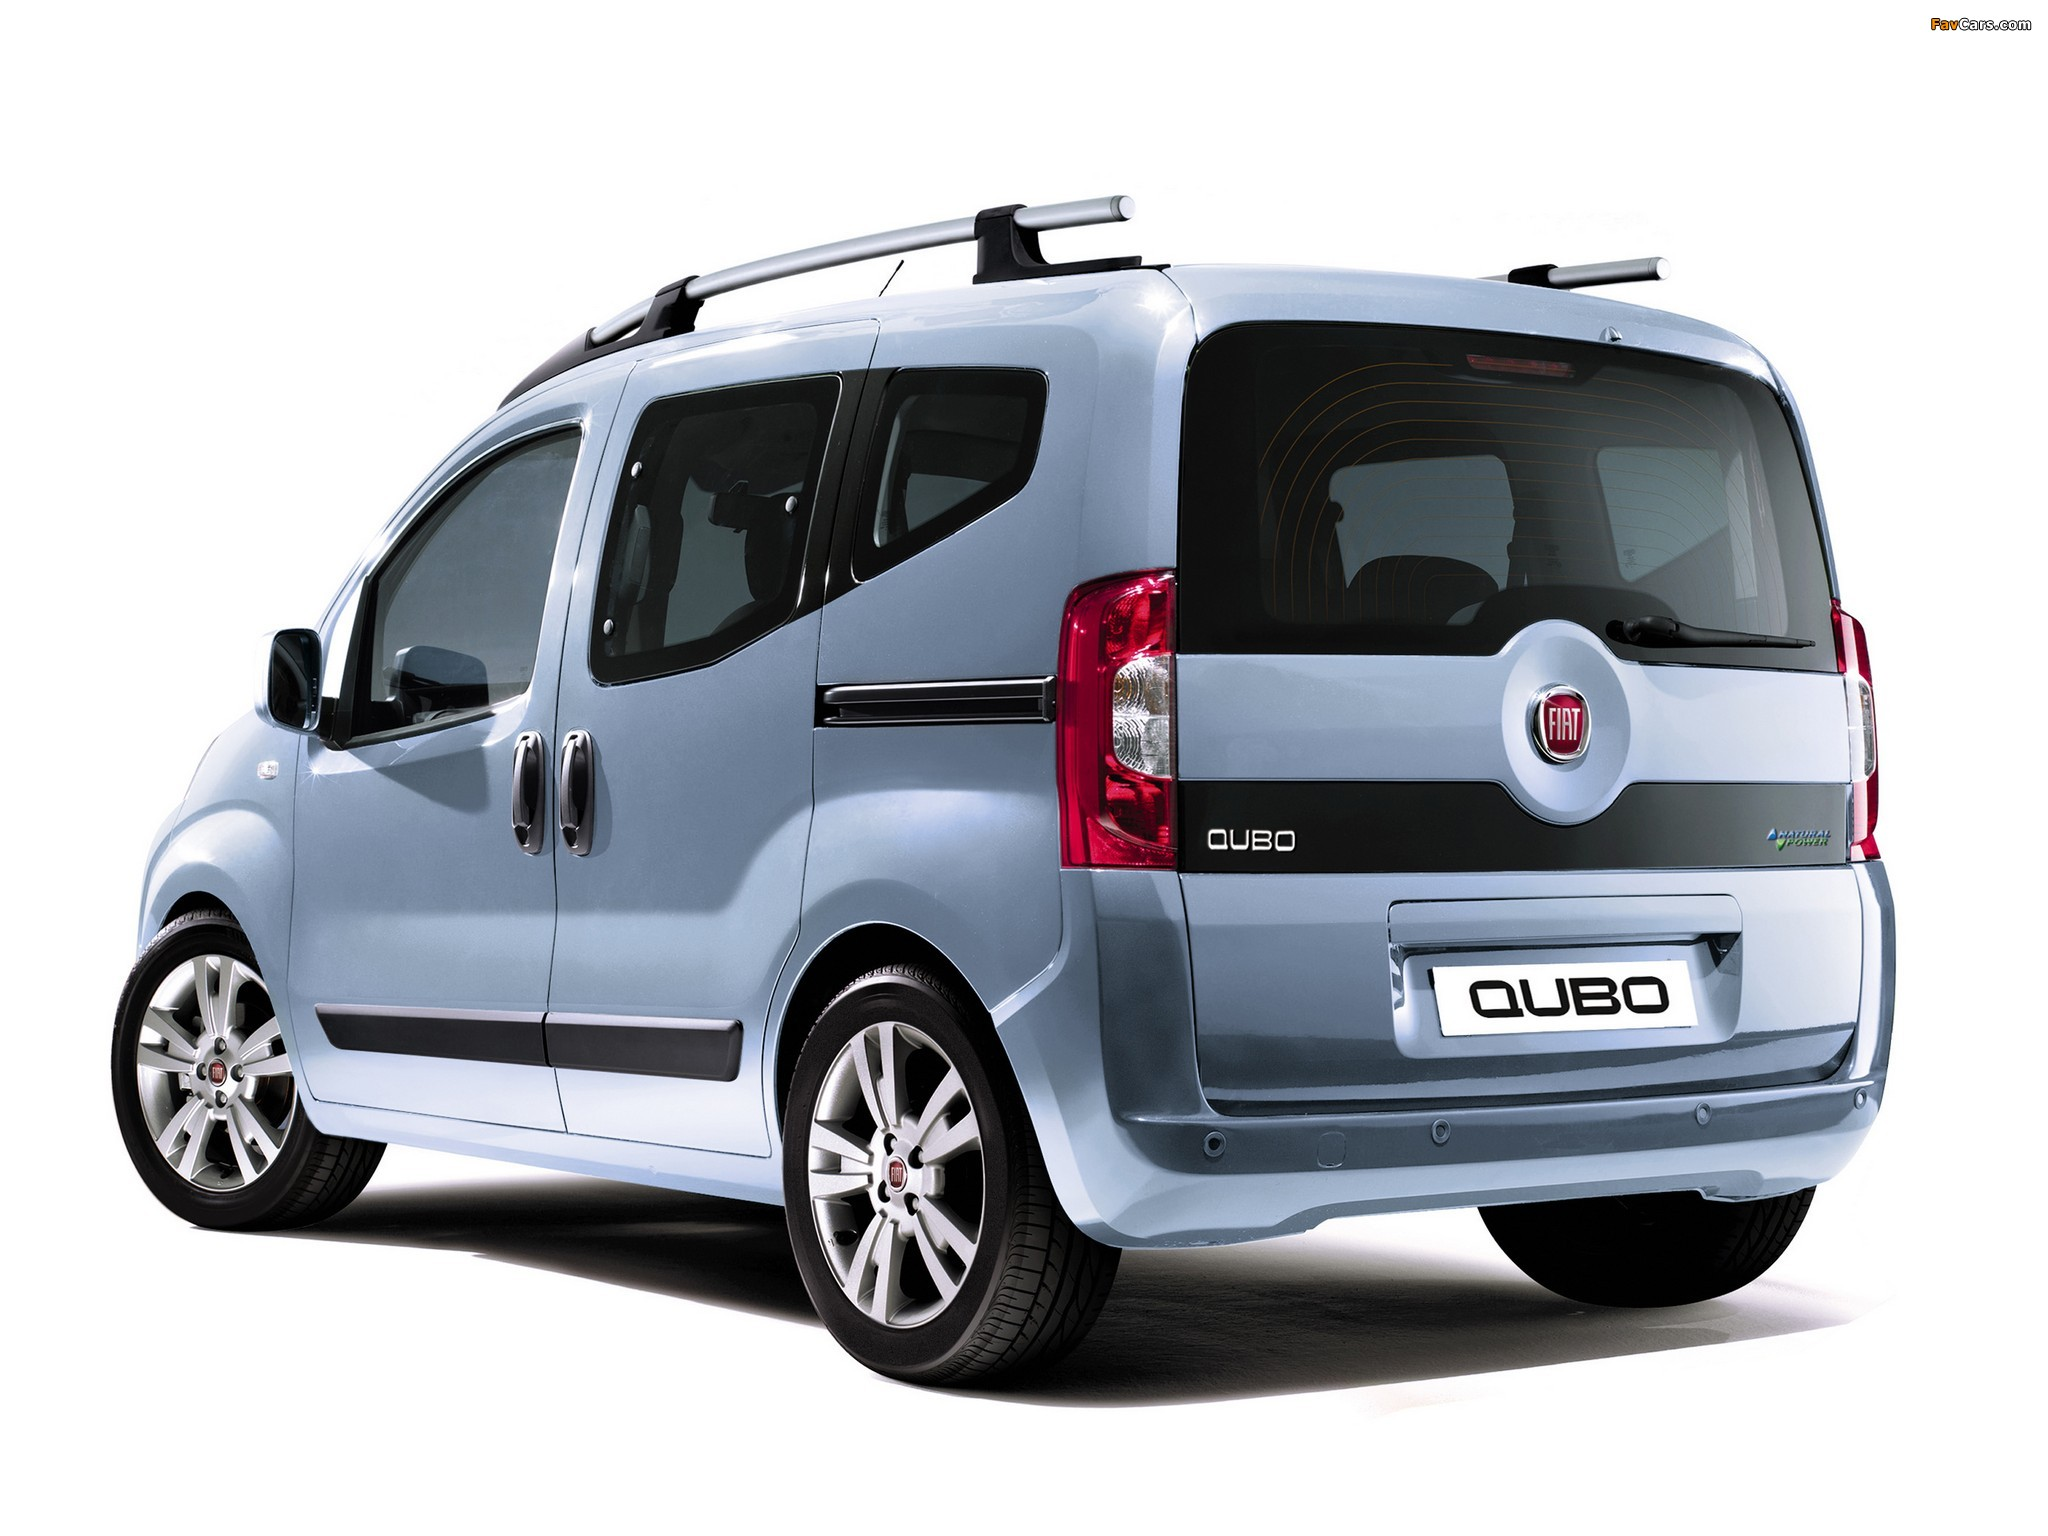 Fiat Qubo Natural Power (225) 2009 wallpapers (2048 x 1536)